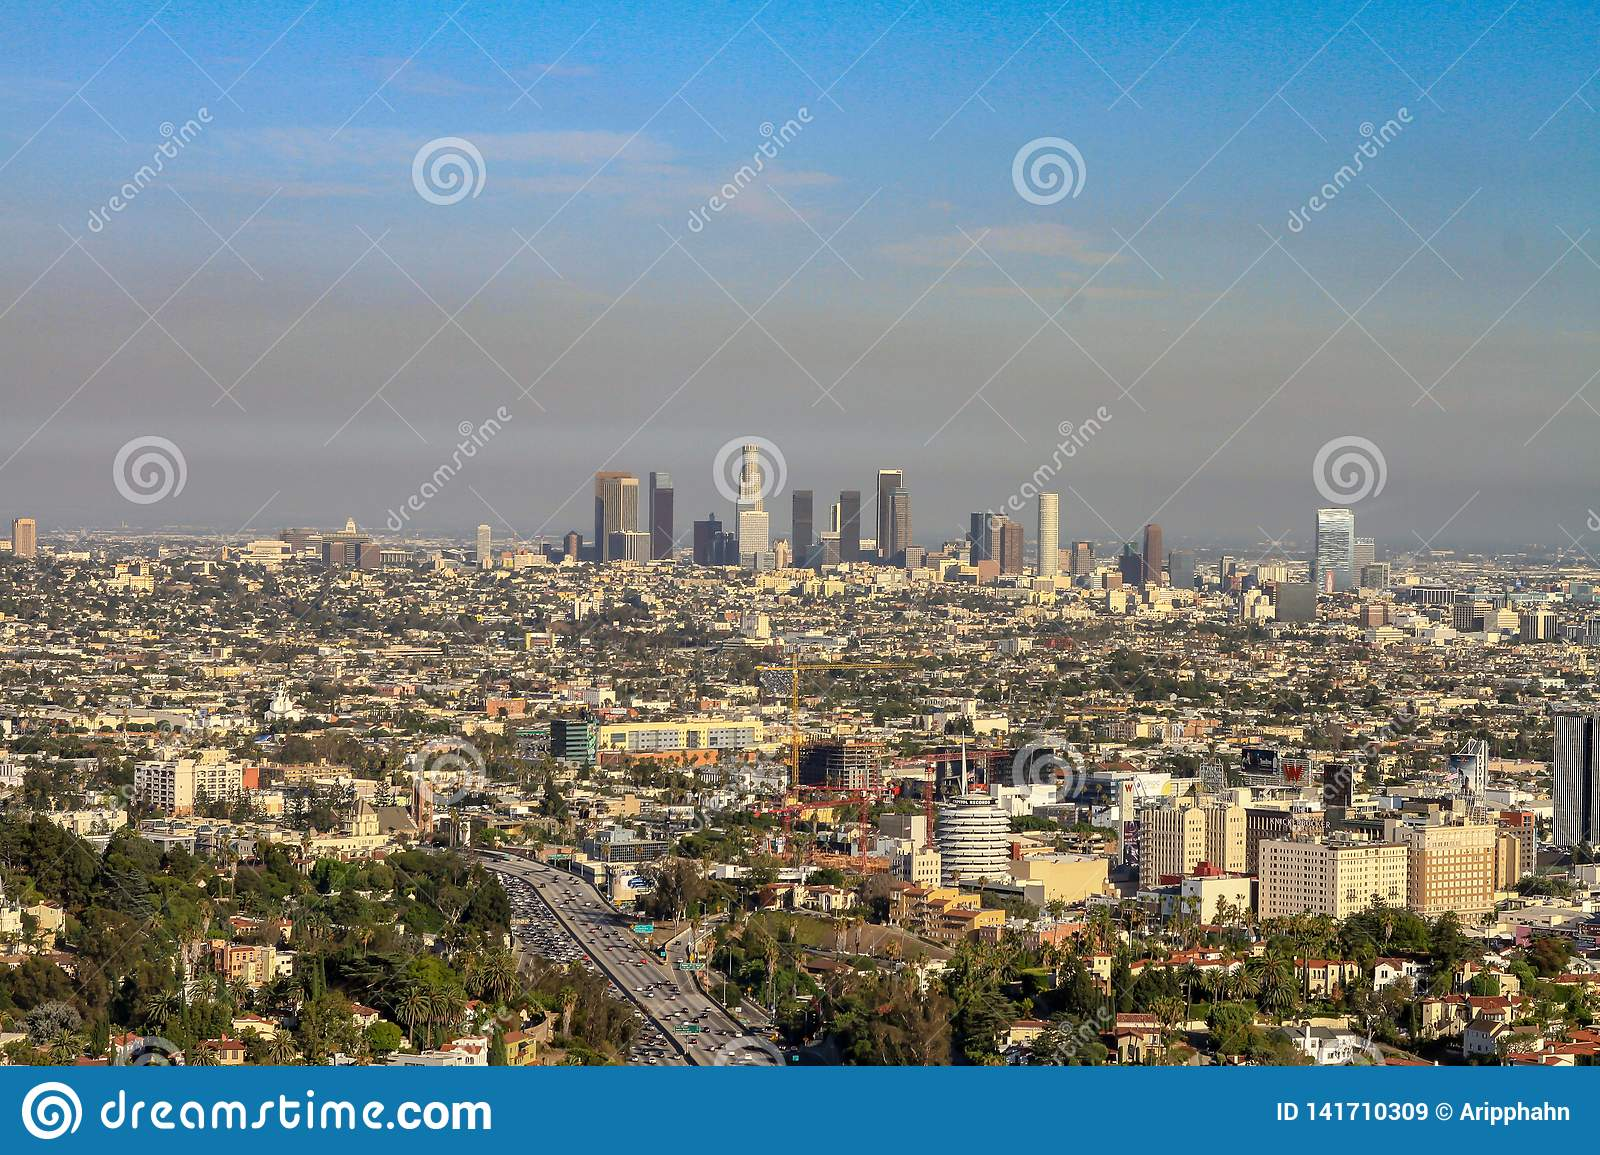 Downtown of Los Angeles viewed from the distance